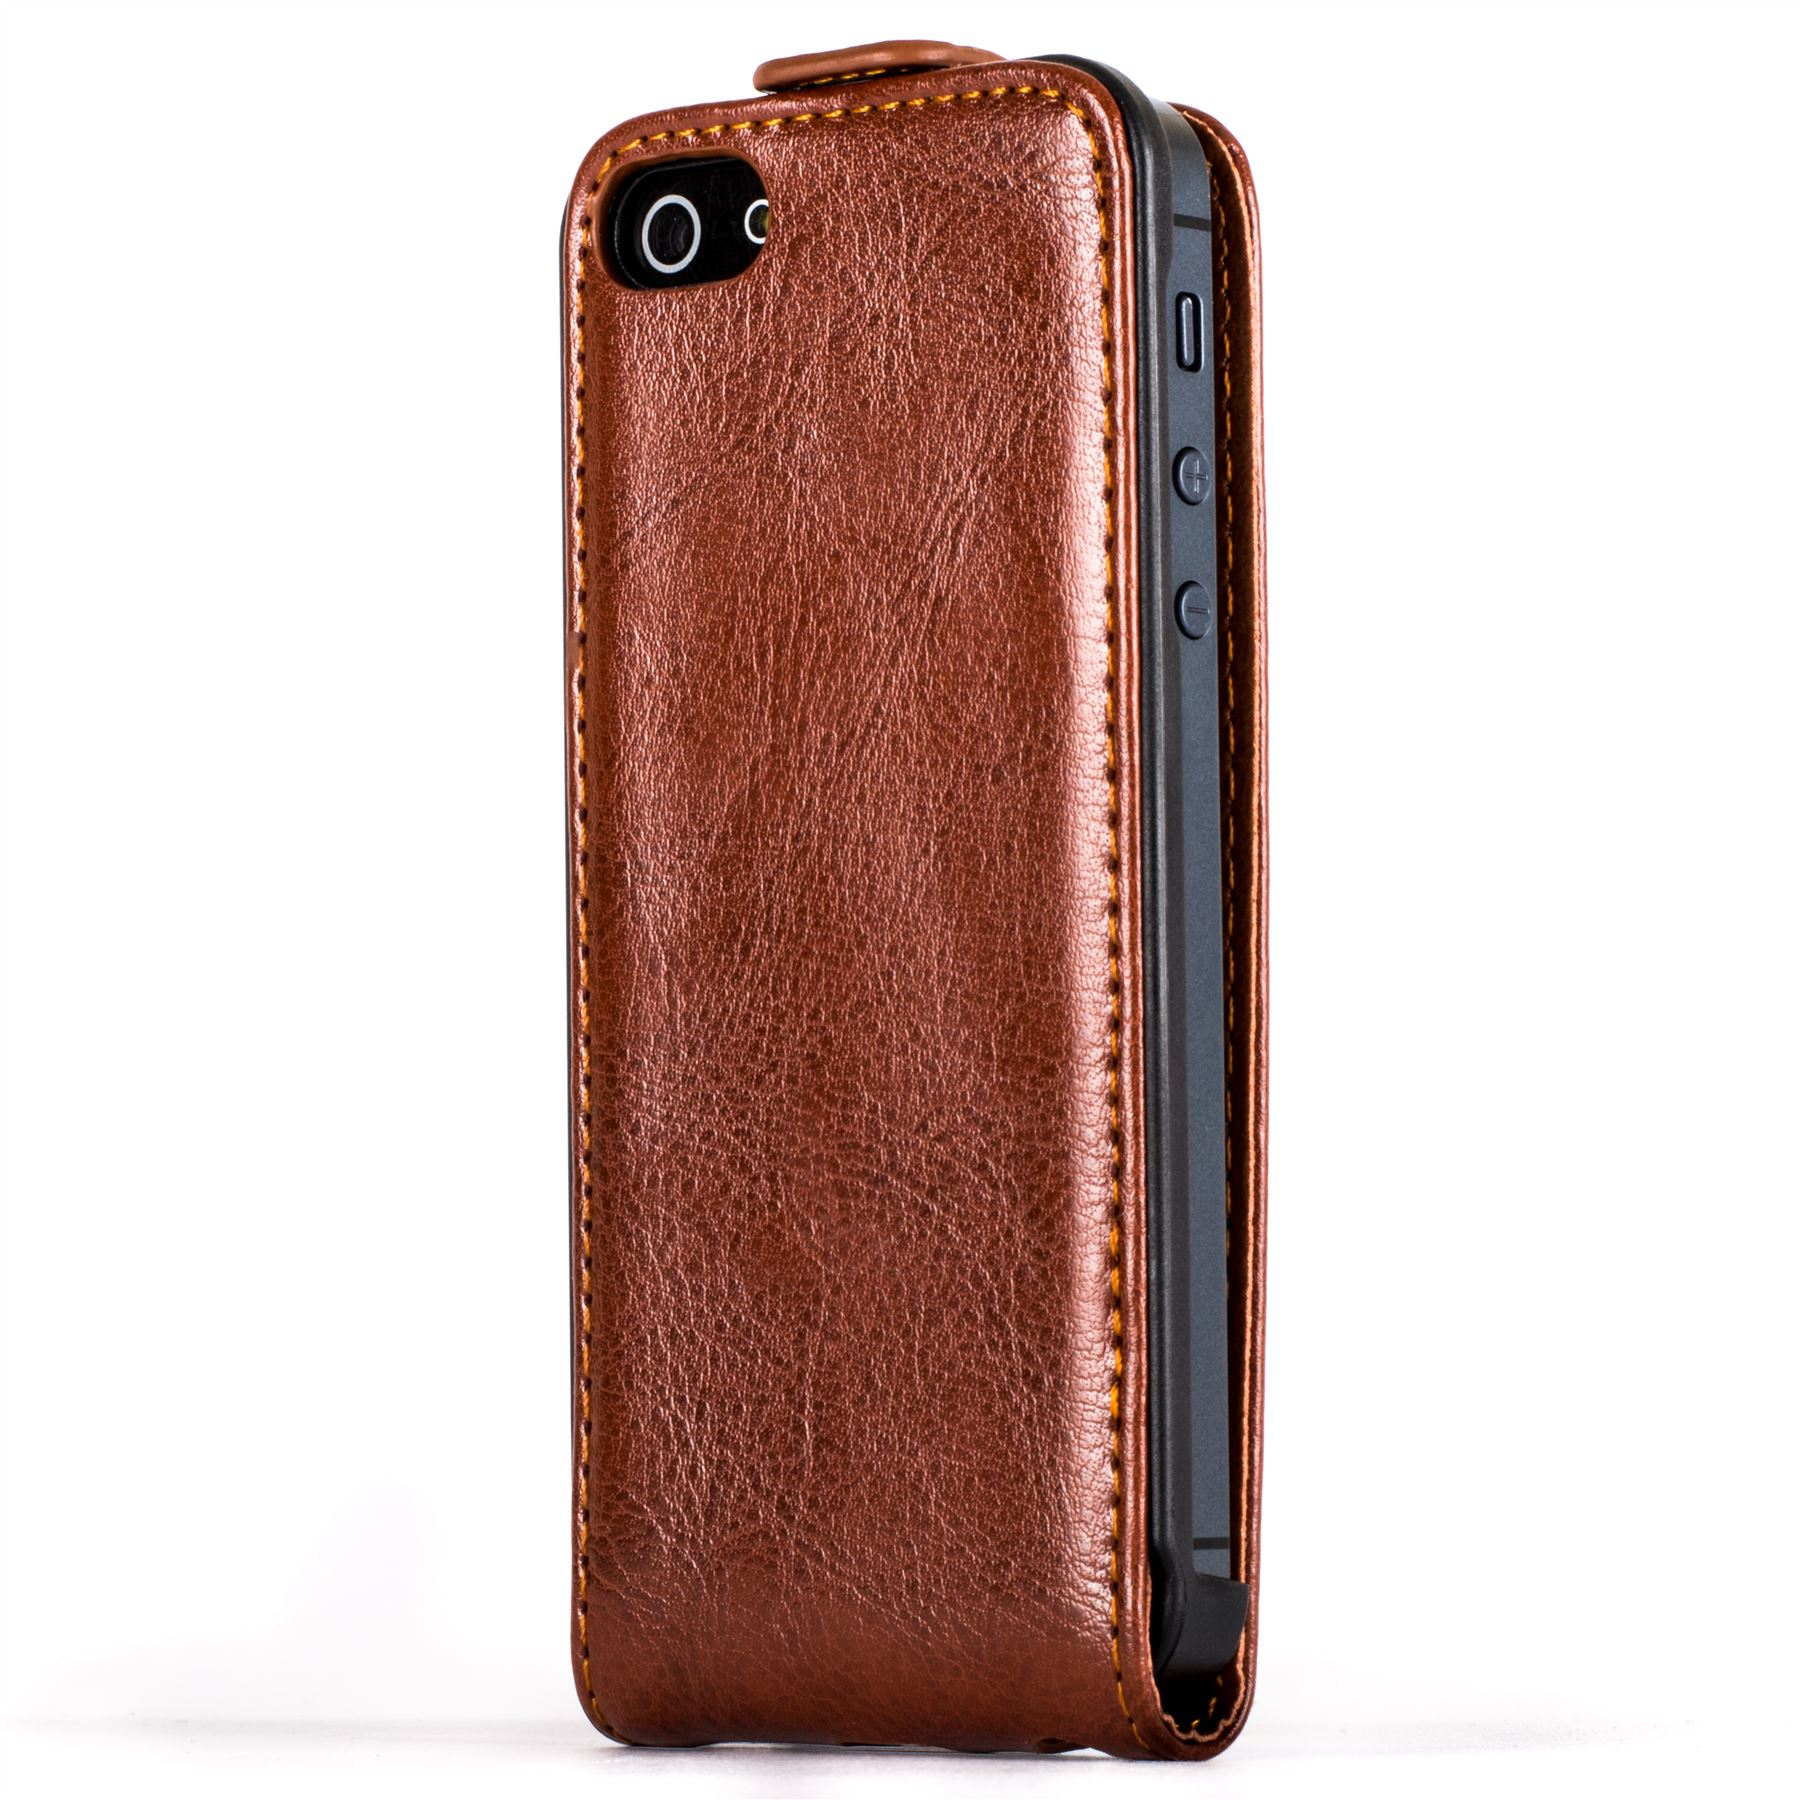 Snakehive premium leather flip case cover for apple iphone 5 5s ebay - Iphone 5s leather case ...